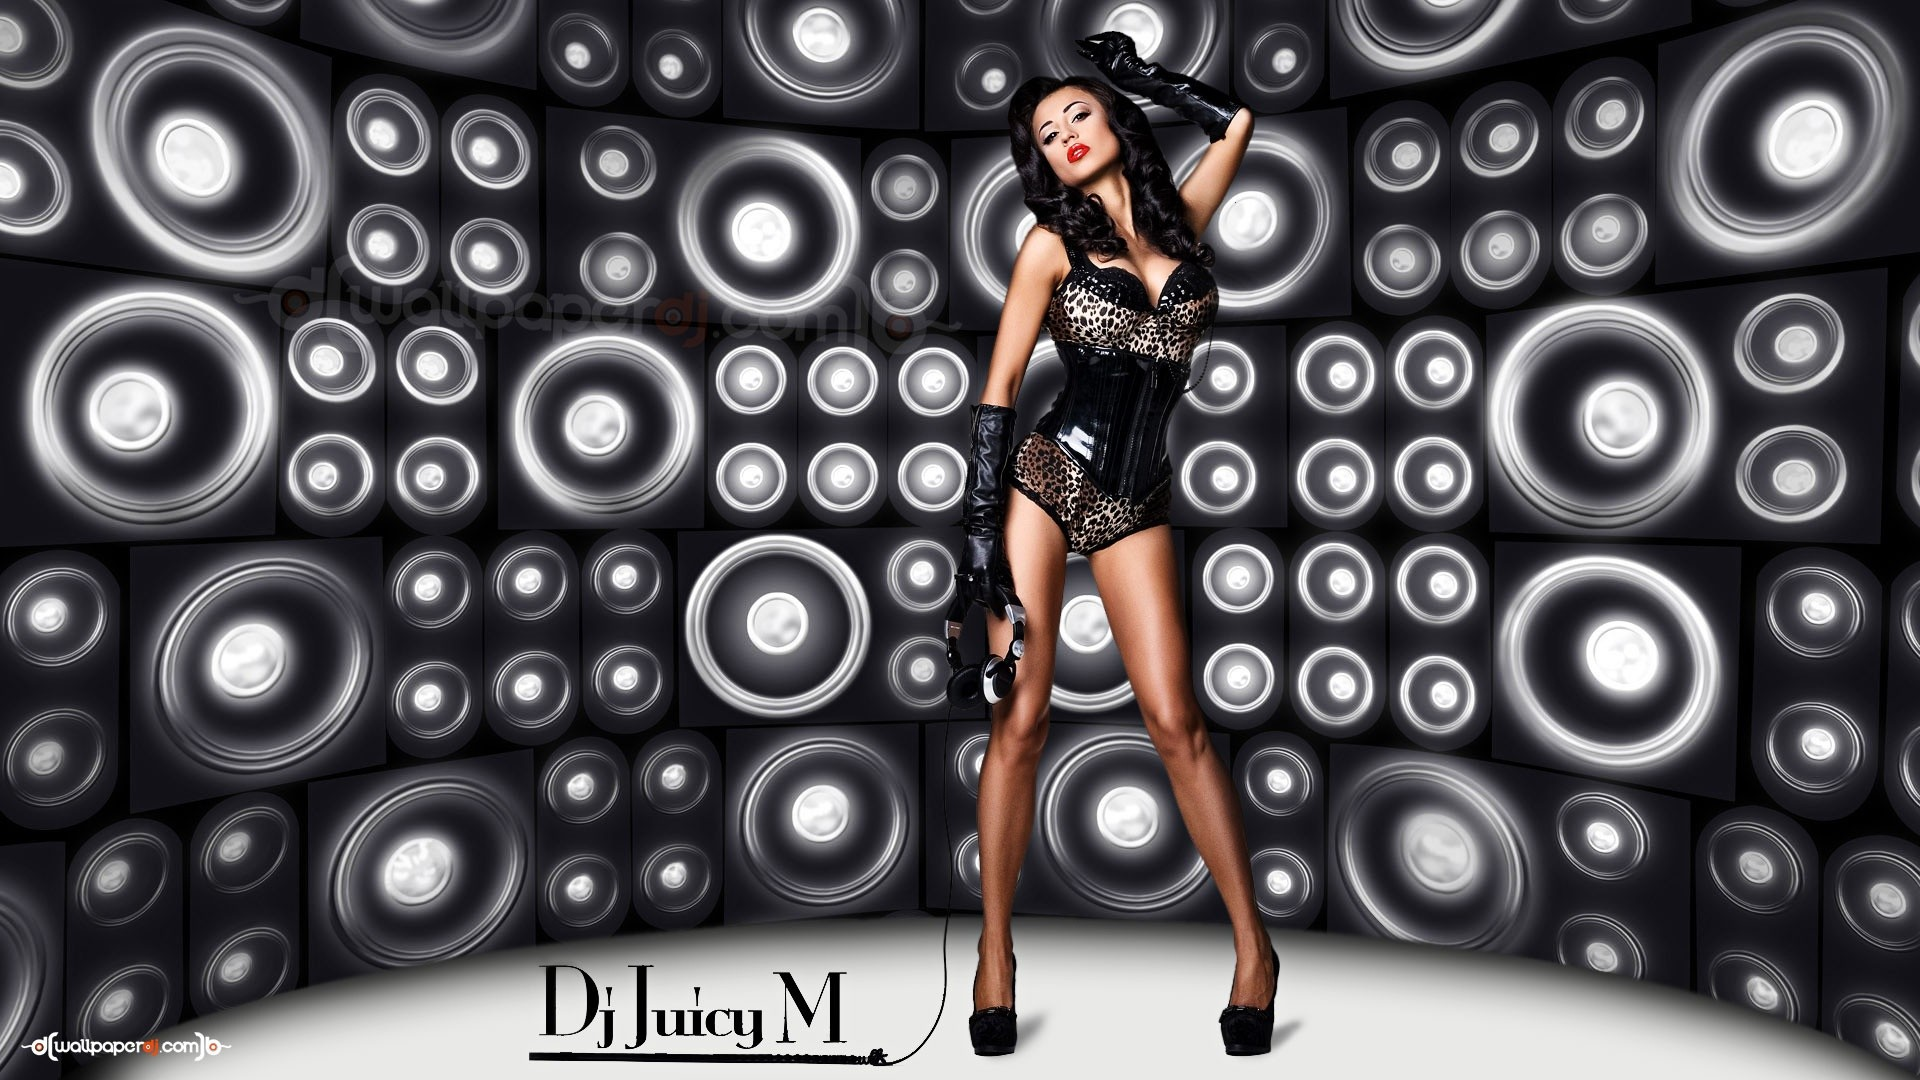 1920x1080  Dj Juicy M wallpaper, music and dance wallpapers